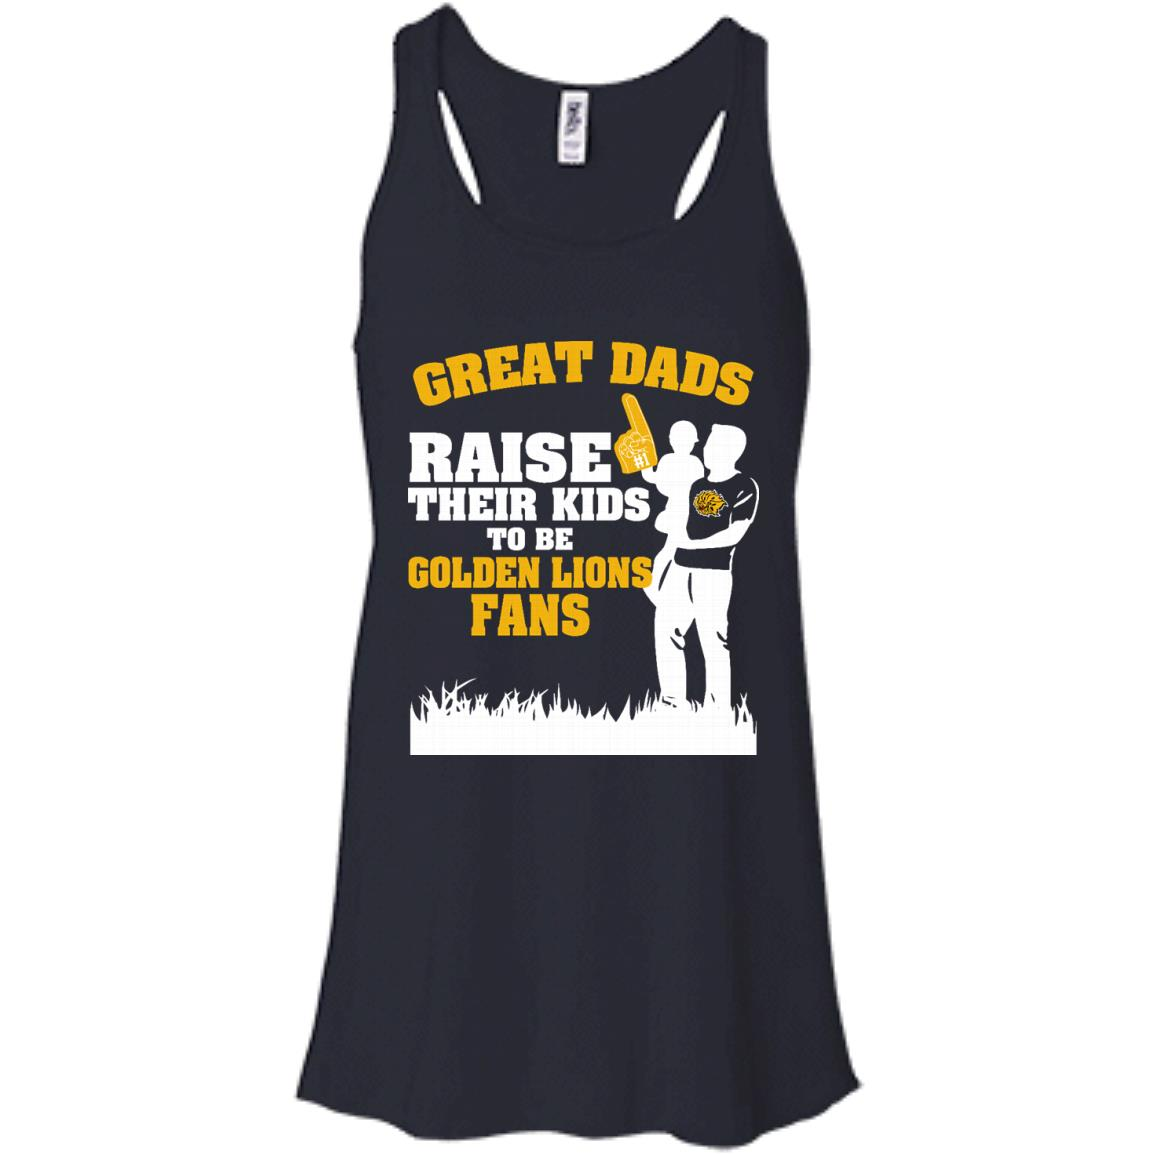 Arkansas Pine Bluff Golden Lions Father T shirts Great Dads Raise Their Kids To Be Golden Lions Fans Hoodies Sweatshirts